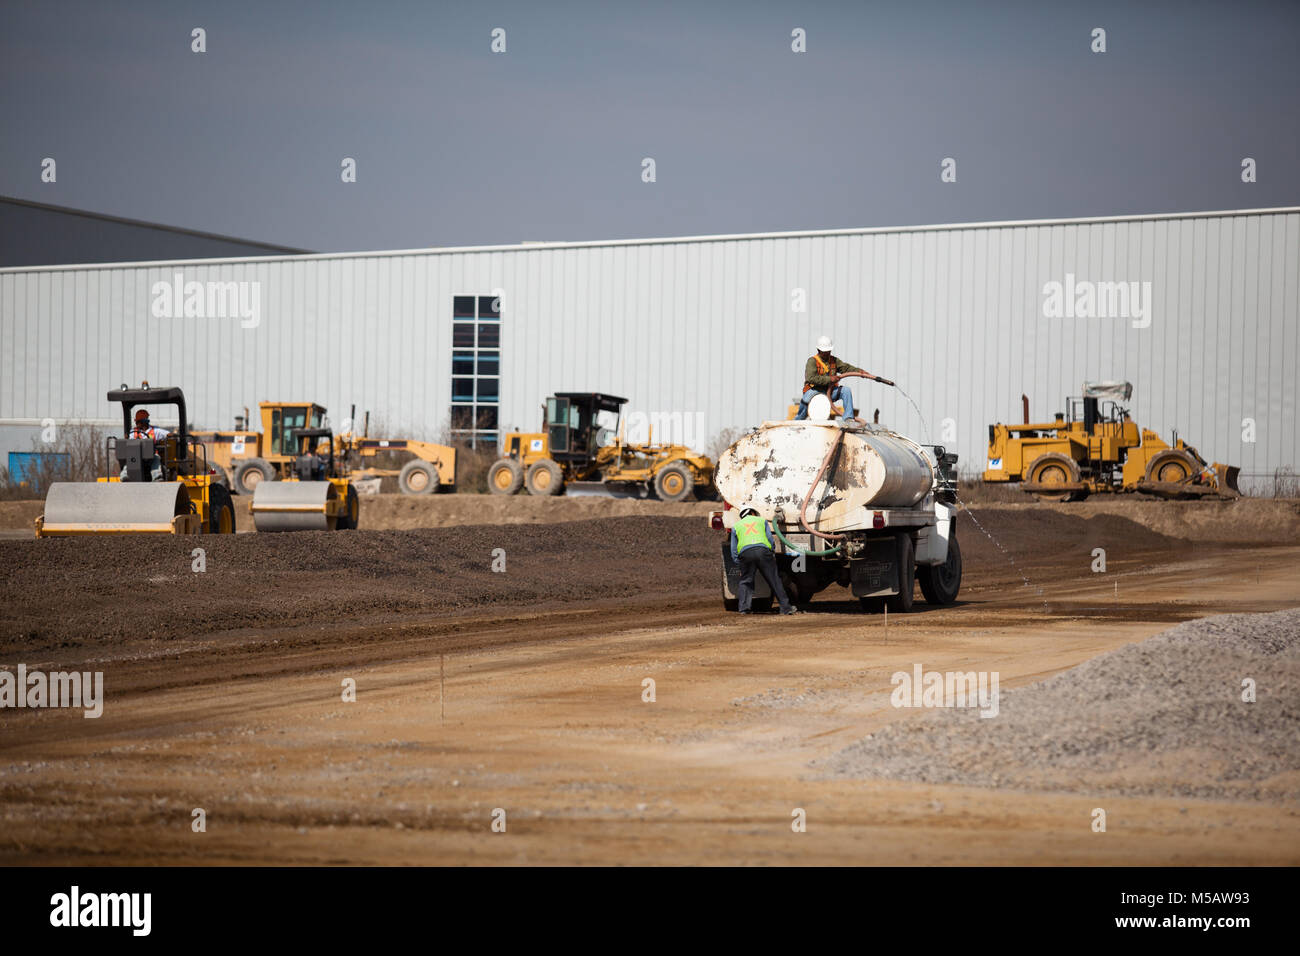 Construction at the Volkswagen factory in Puebla, Mexico on Wednesday, January 21, 2015. This is one of the largest Stock Photo